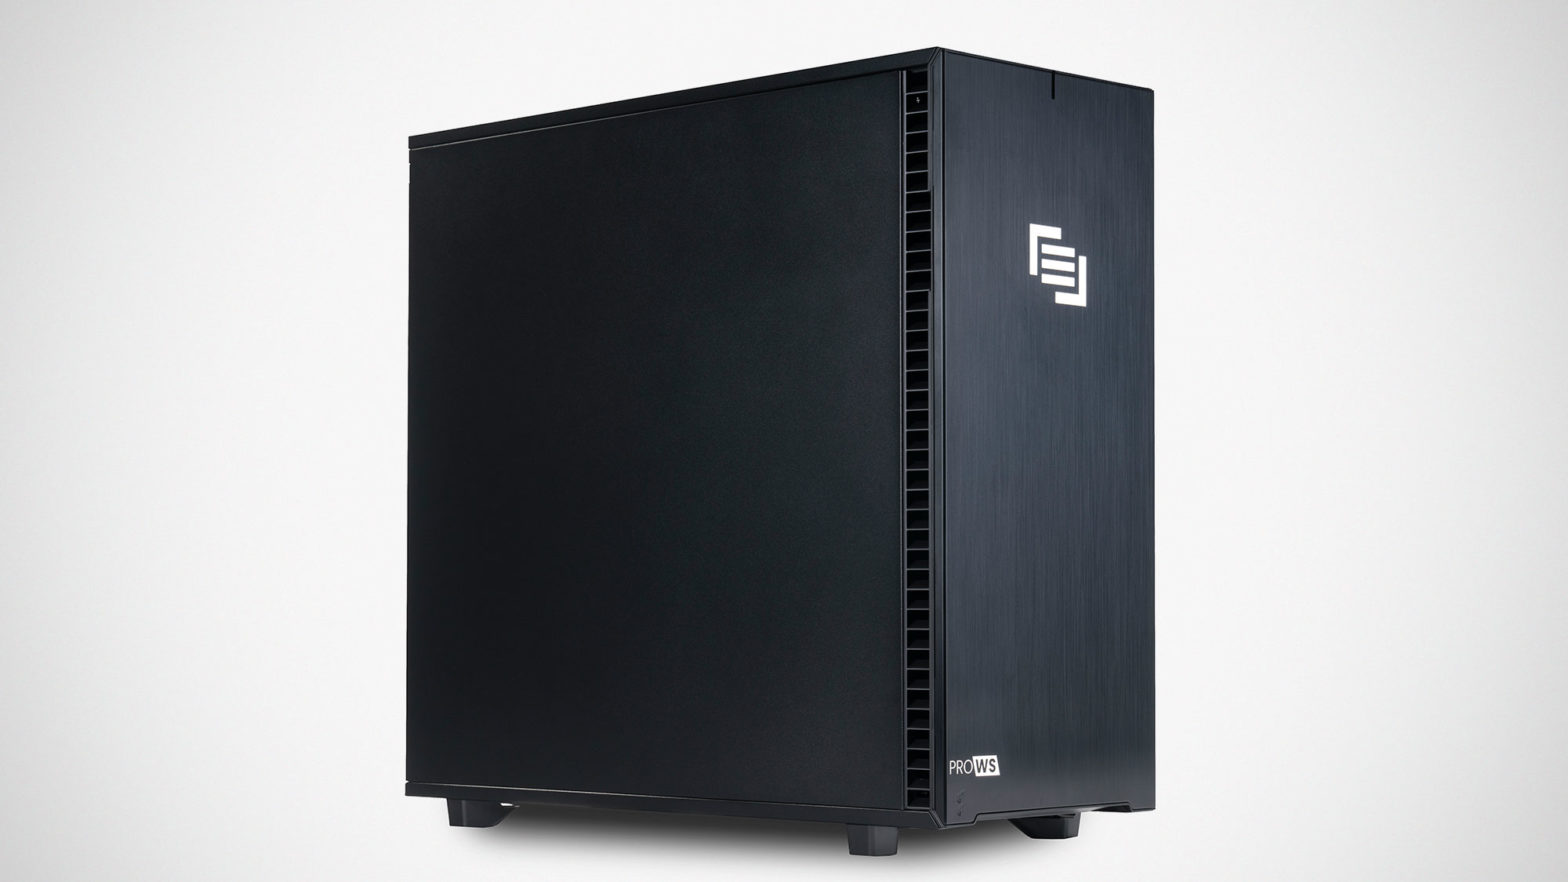 Maingear Pro WS Workstation PC